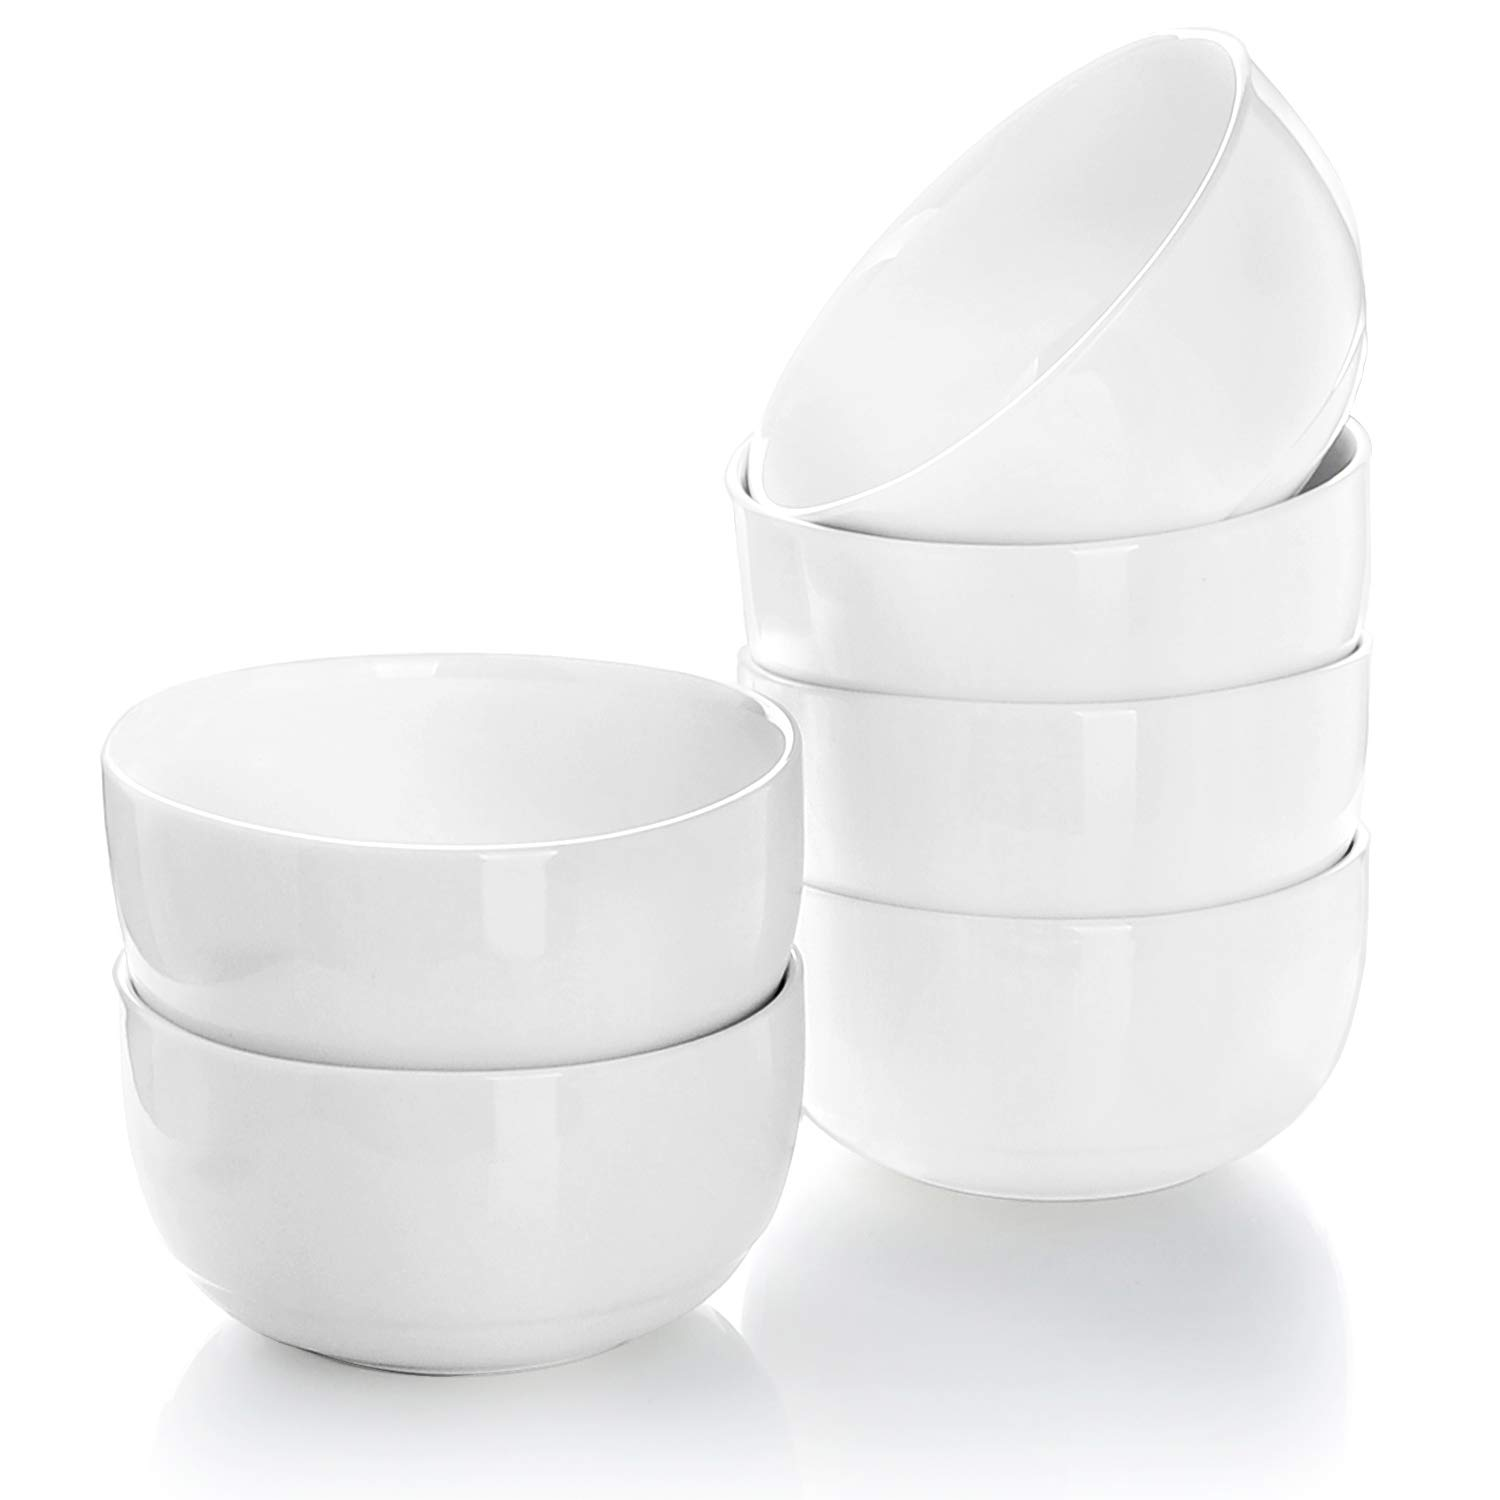 Teocera 10 Oz Porcelain Bowls - 4.25 inch Small White Bowl Set of 6, A Healthier Portion Size for Sauce Dip Serving, Cereal, Dessert, Snack, Rice, Ice cream, Fruit, Microwave Safe by Teocera